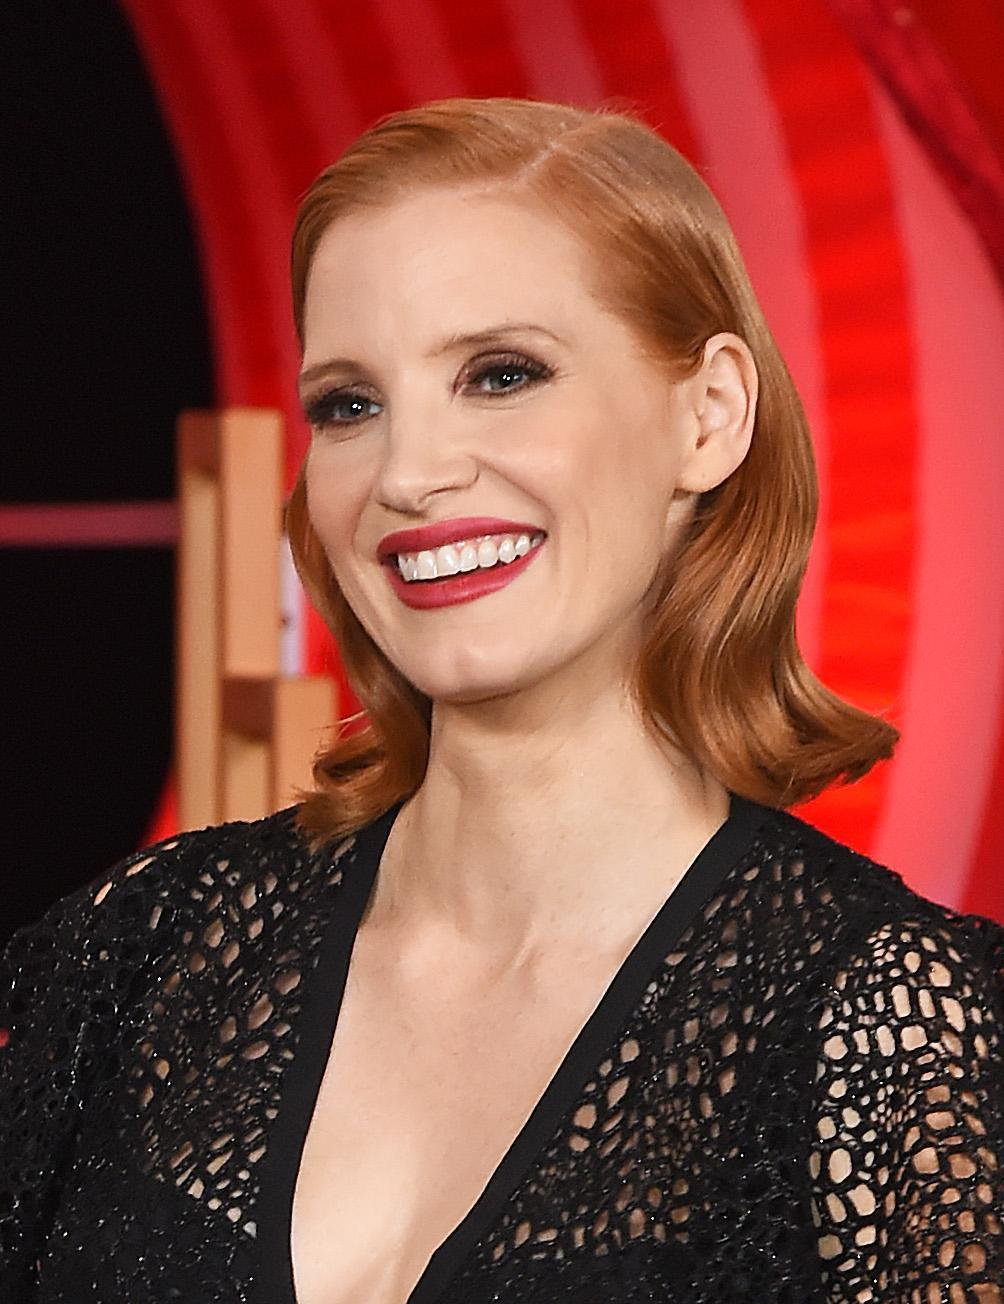 LONDON, ENGLAND - SEPTEMBER 02: Jessica Chastain attends the European Premiere of